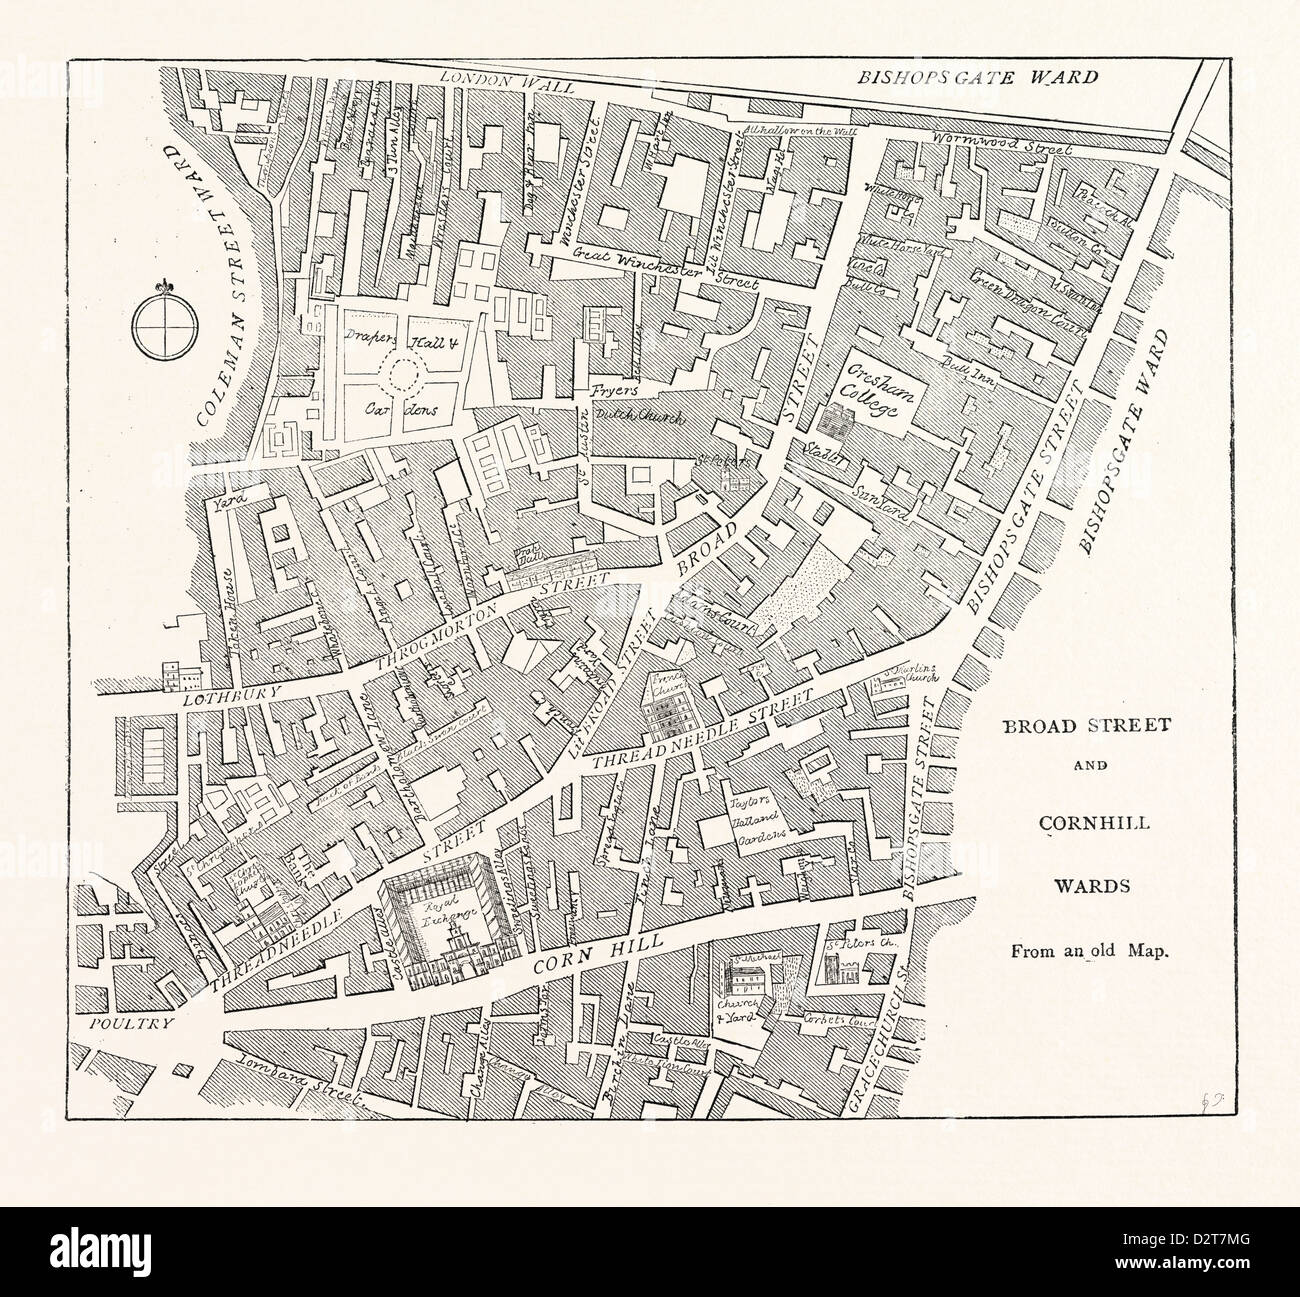 BROAD STREET AND CORNHILL WARDS From a Map of 1750 LONDON - Stock Image